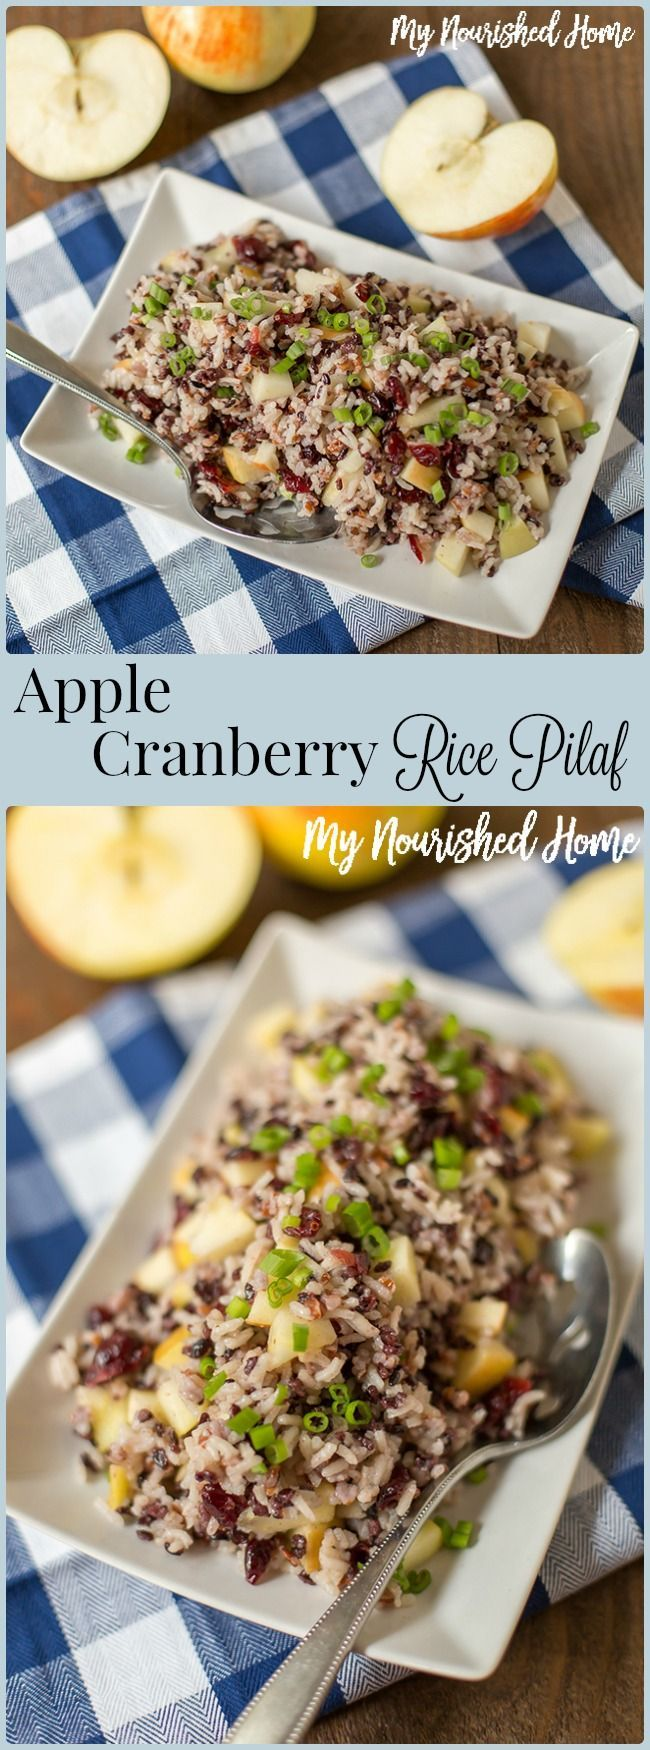 Apple Cranberry Rice Pilaf is a delicious, seasonal side. Both sweet and tart, it goes great with chicken, fish, and pork.